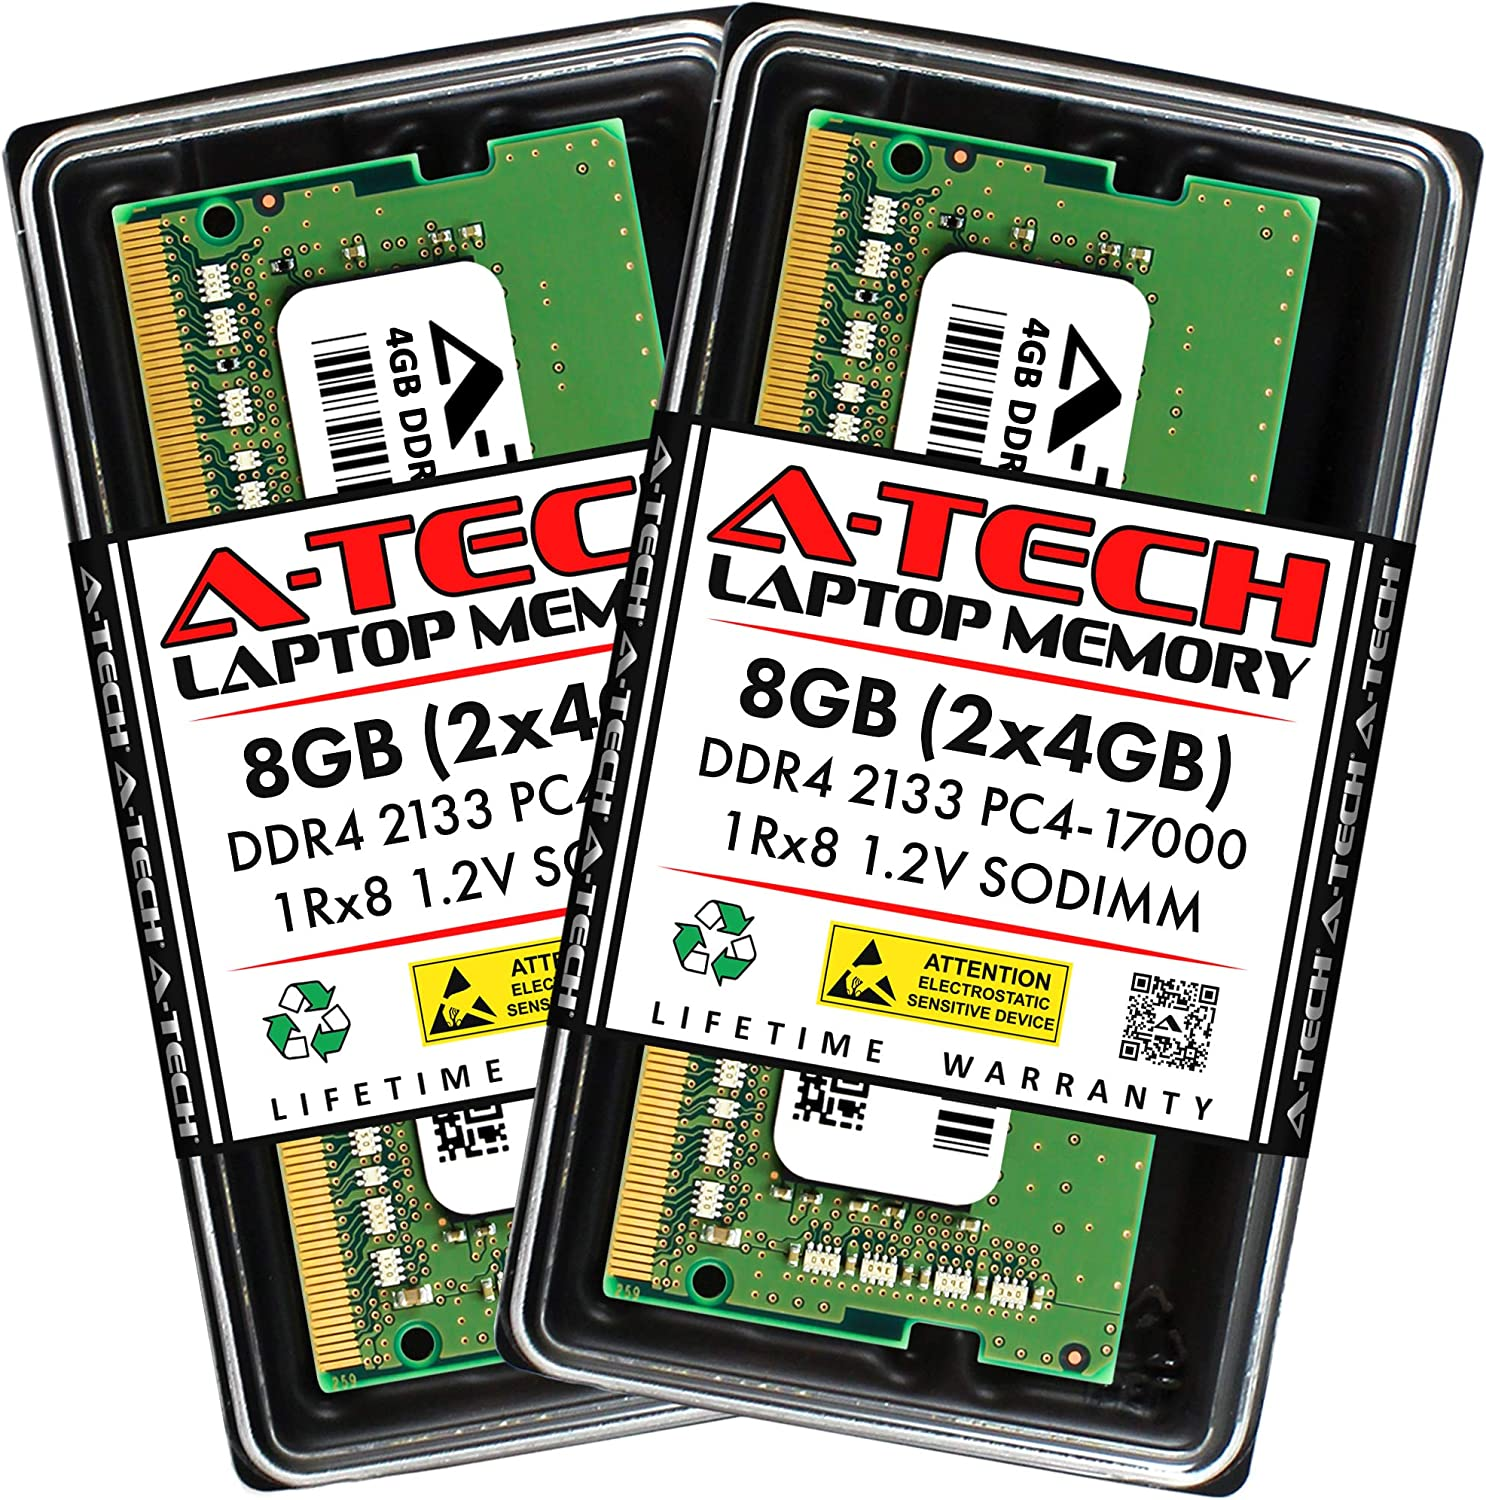 A-Tech 8GB (2x4GB) DDR4 2133MHz SODIMM PC4-17000 1Rx8 Single Rank 260-Pin CL15 1.2V Non-ECC Unbuffered Notebook Laptop RAM Memory Upgrade Kit